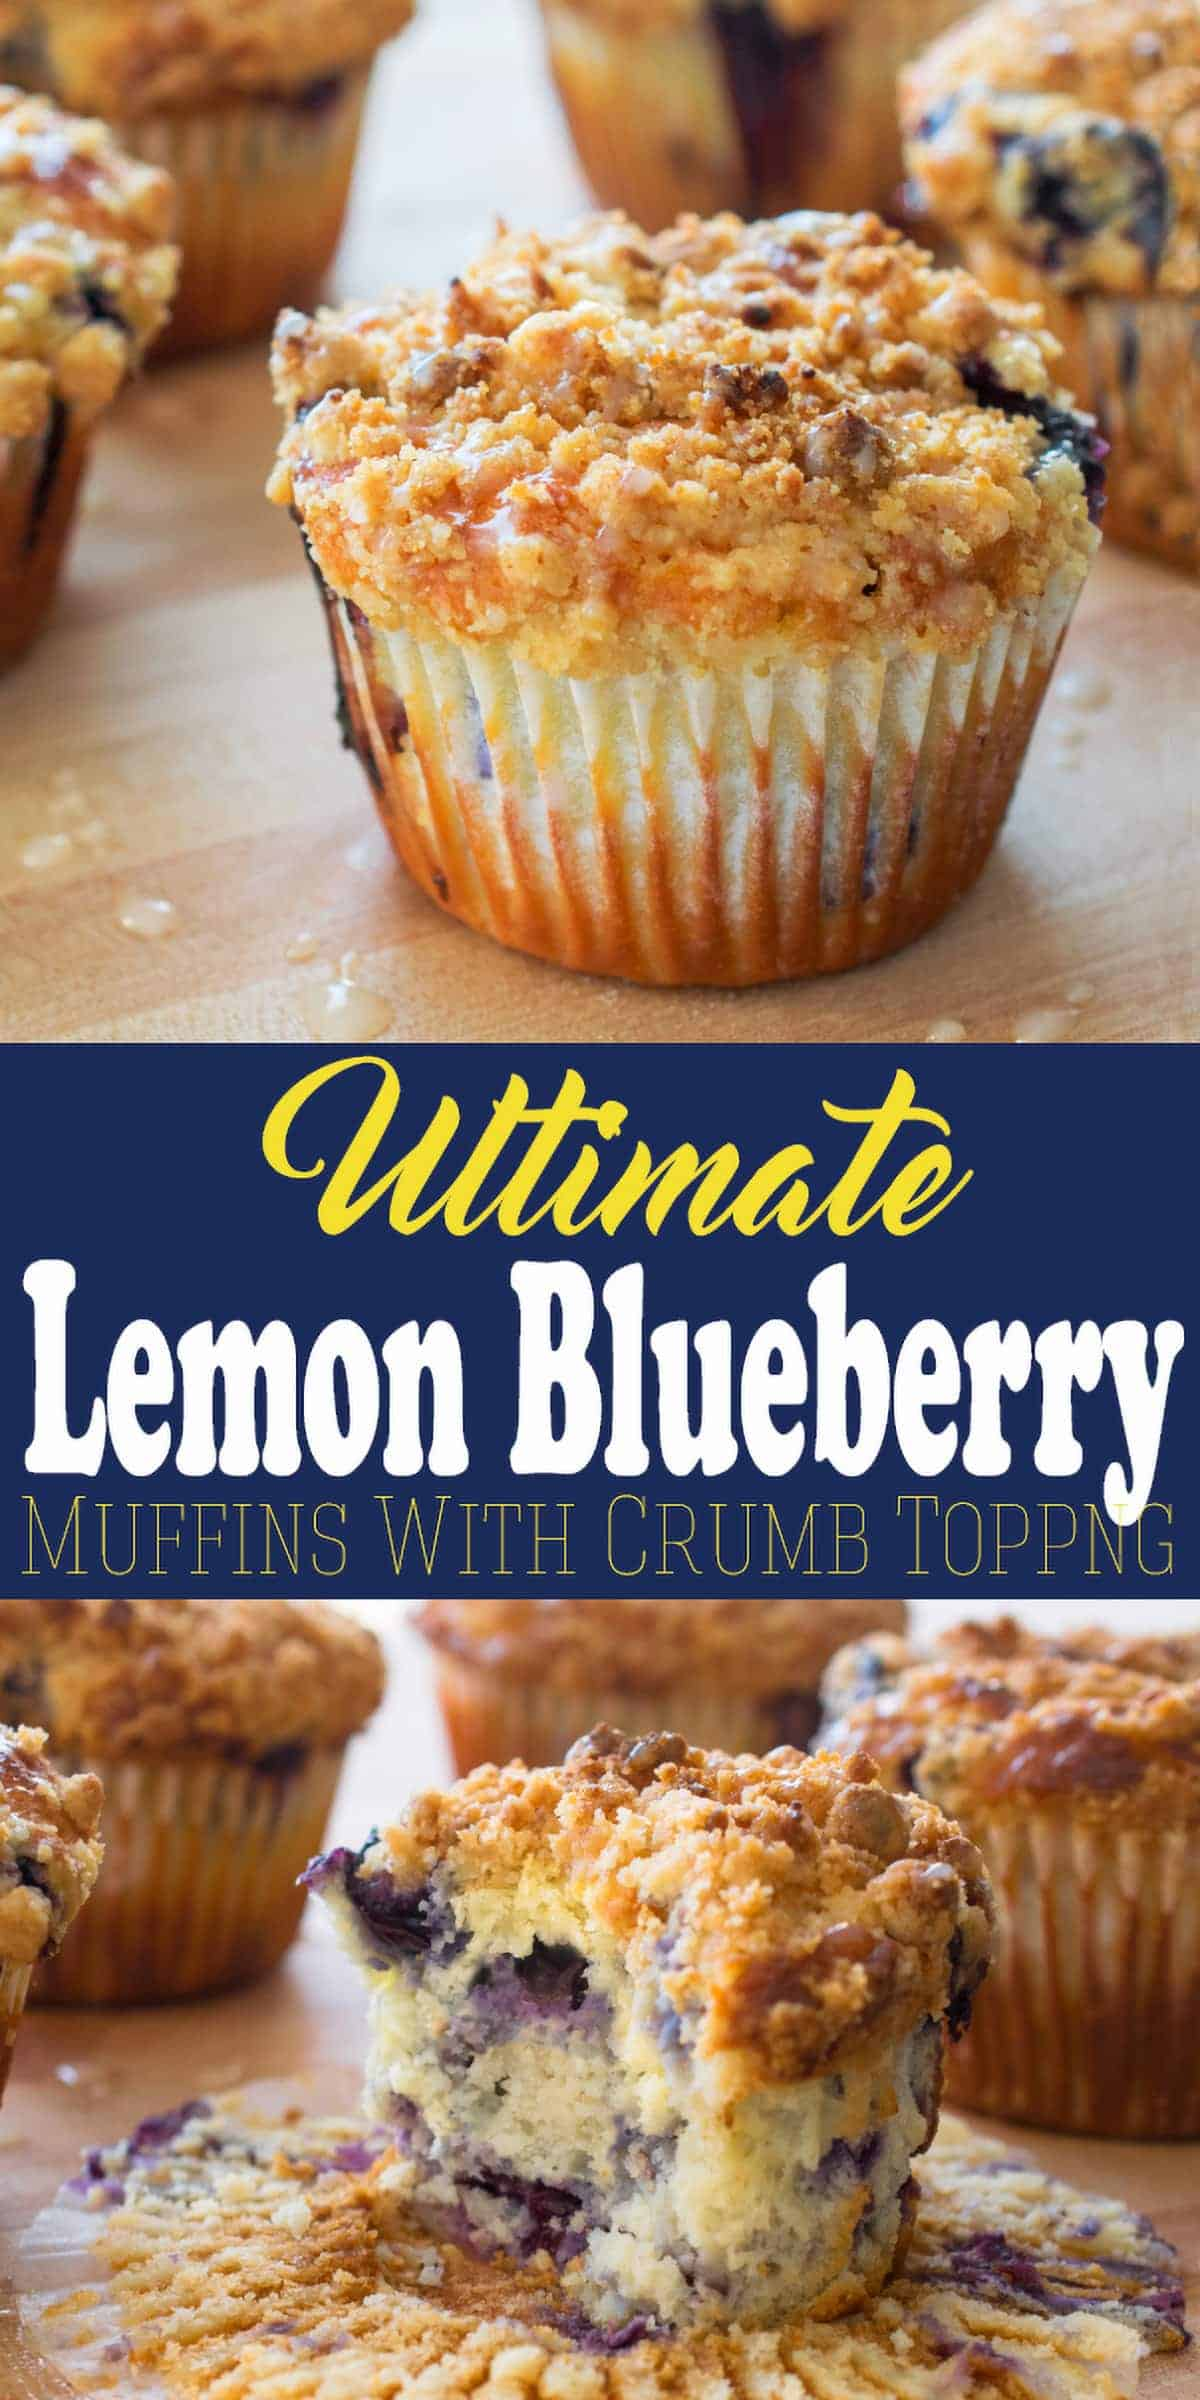 Ultimate lemon blueberry muffins with crumb topping pin title page.